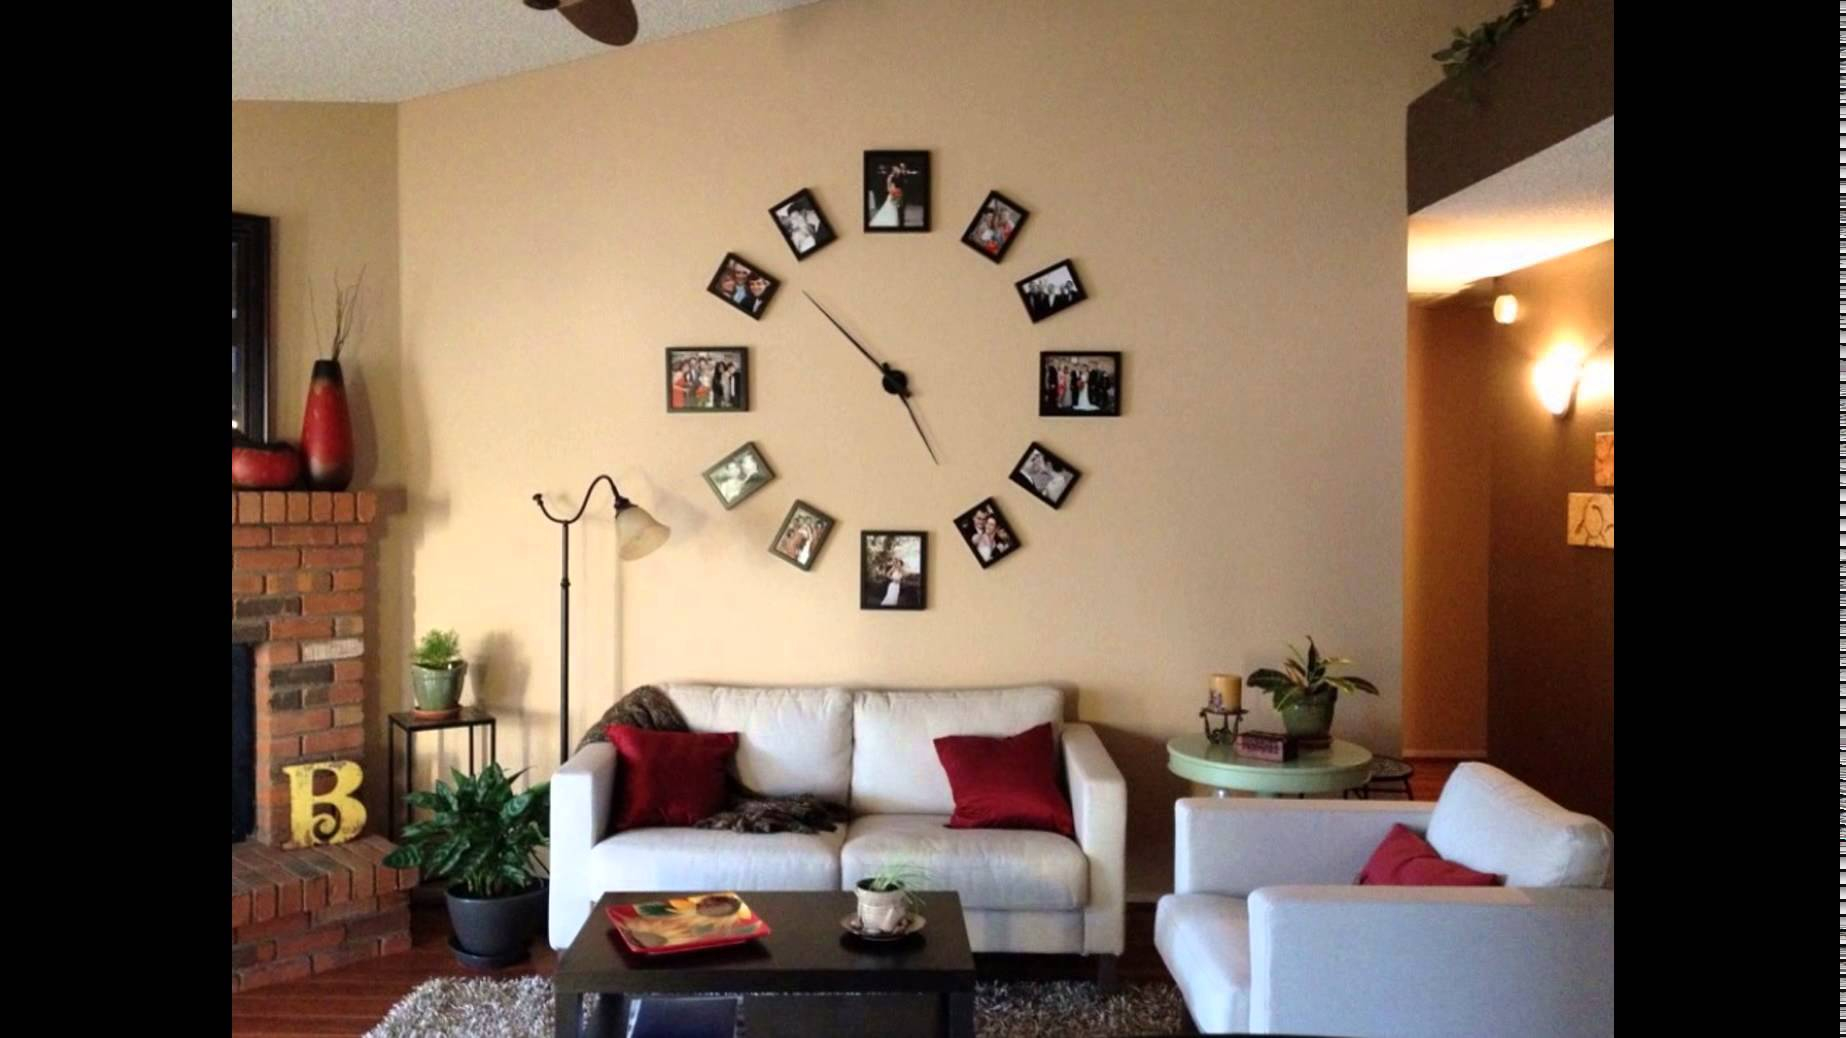 Fancy Creative-Wall-Clock-Photo-Display-Design-For-Minimalist-Living-Room for Living Room Wall Clocks